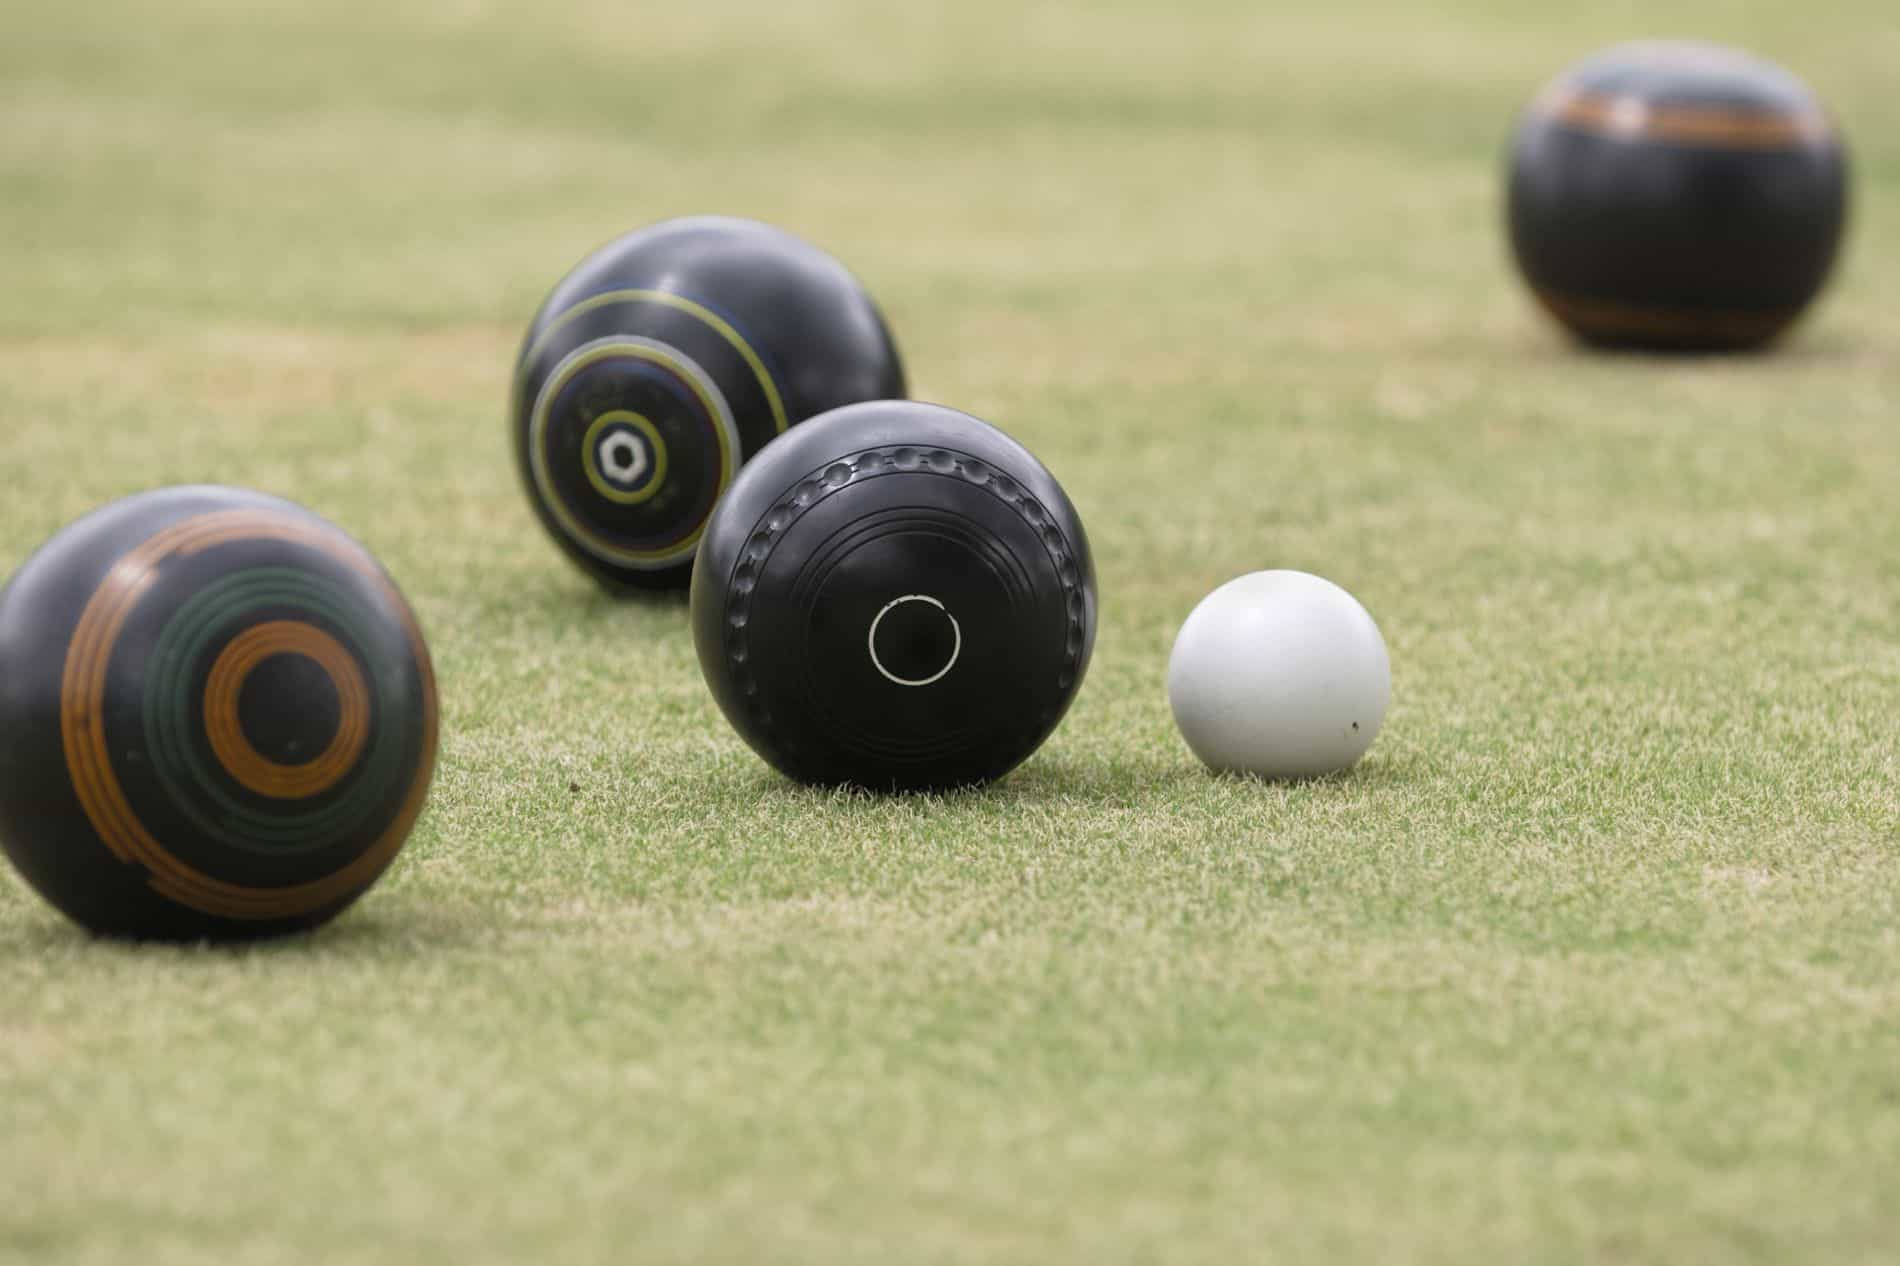 Close Up of Bowls and Jack at Croydon Bowling Club